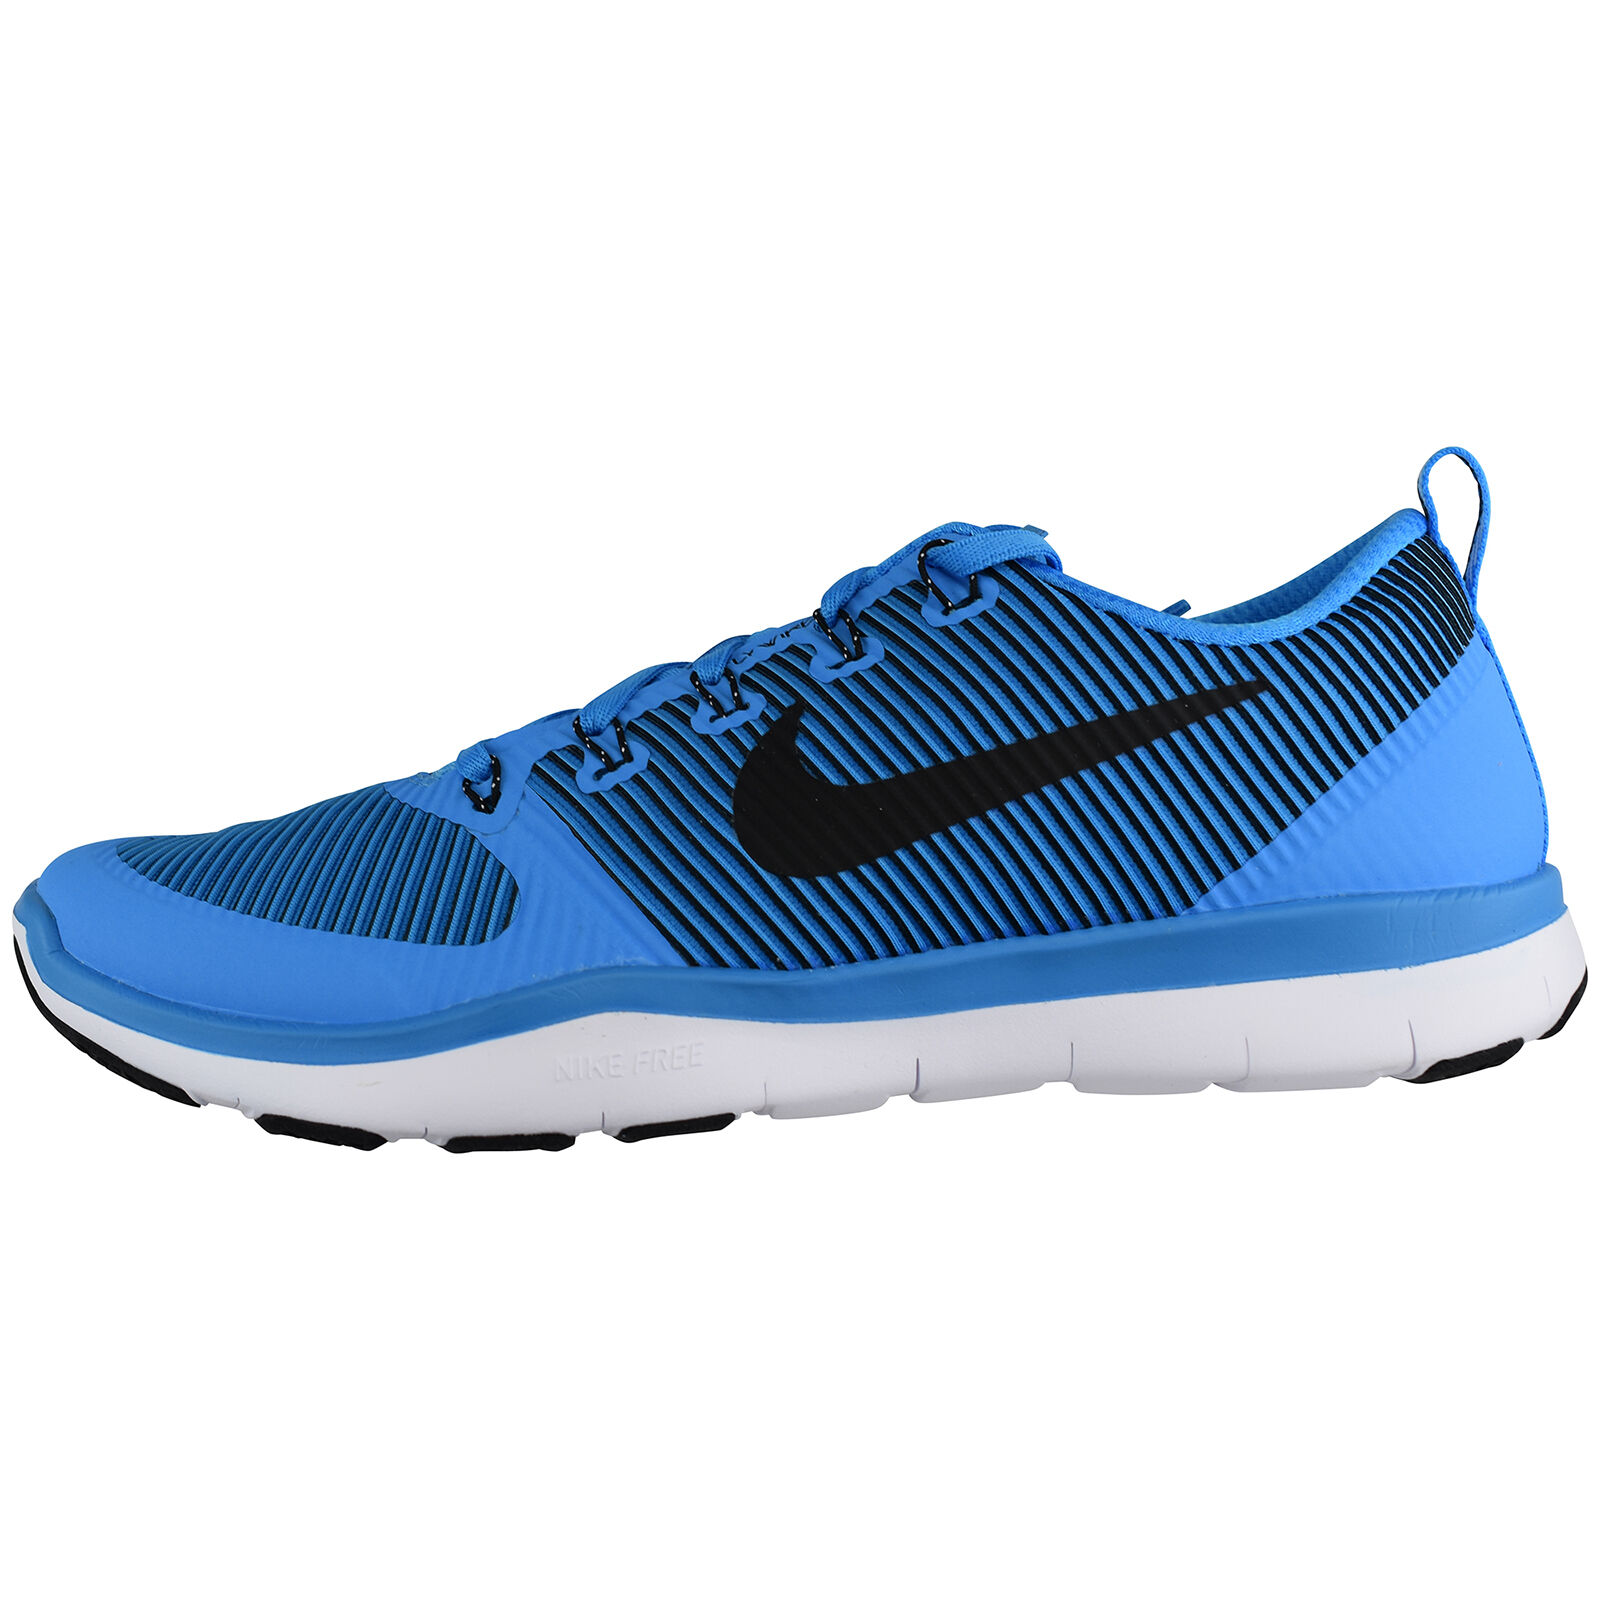 Nike Free Train Versatility 833258-401 Lifestyle Running Shoes Trainers